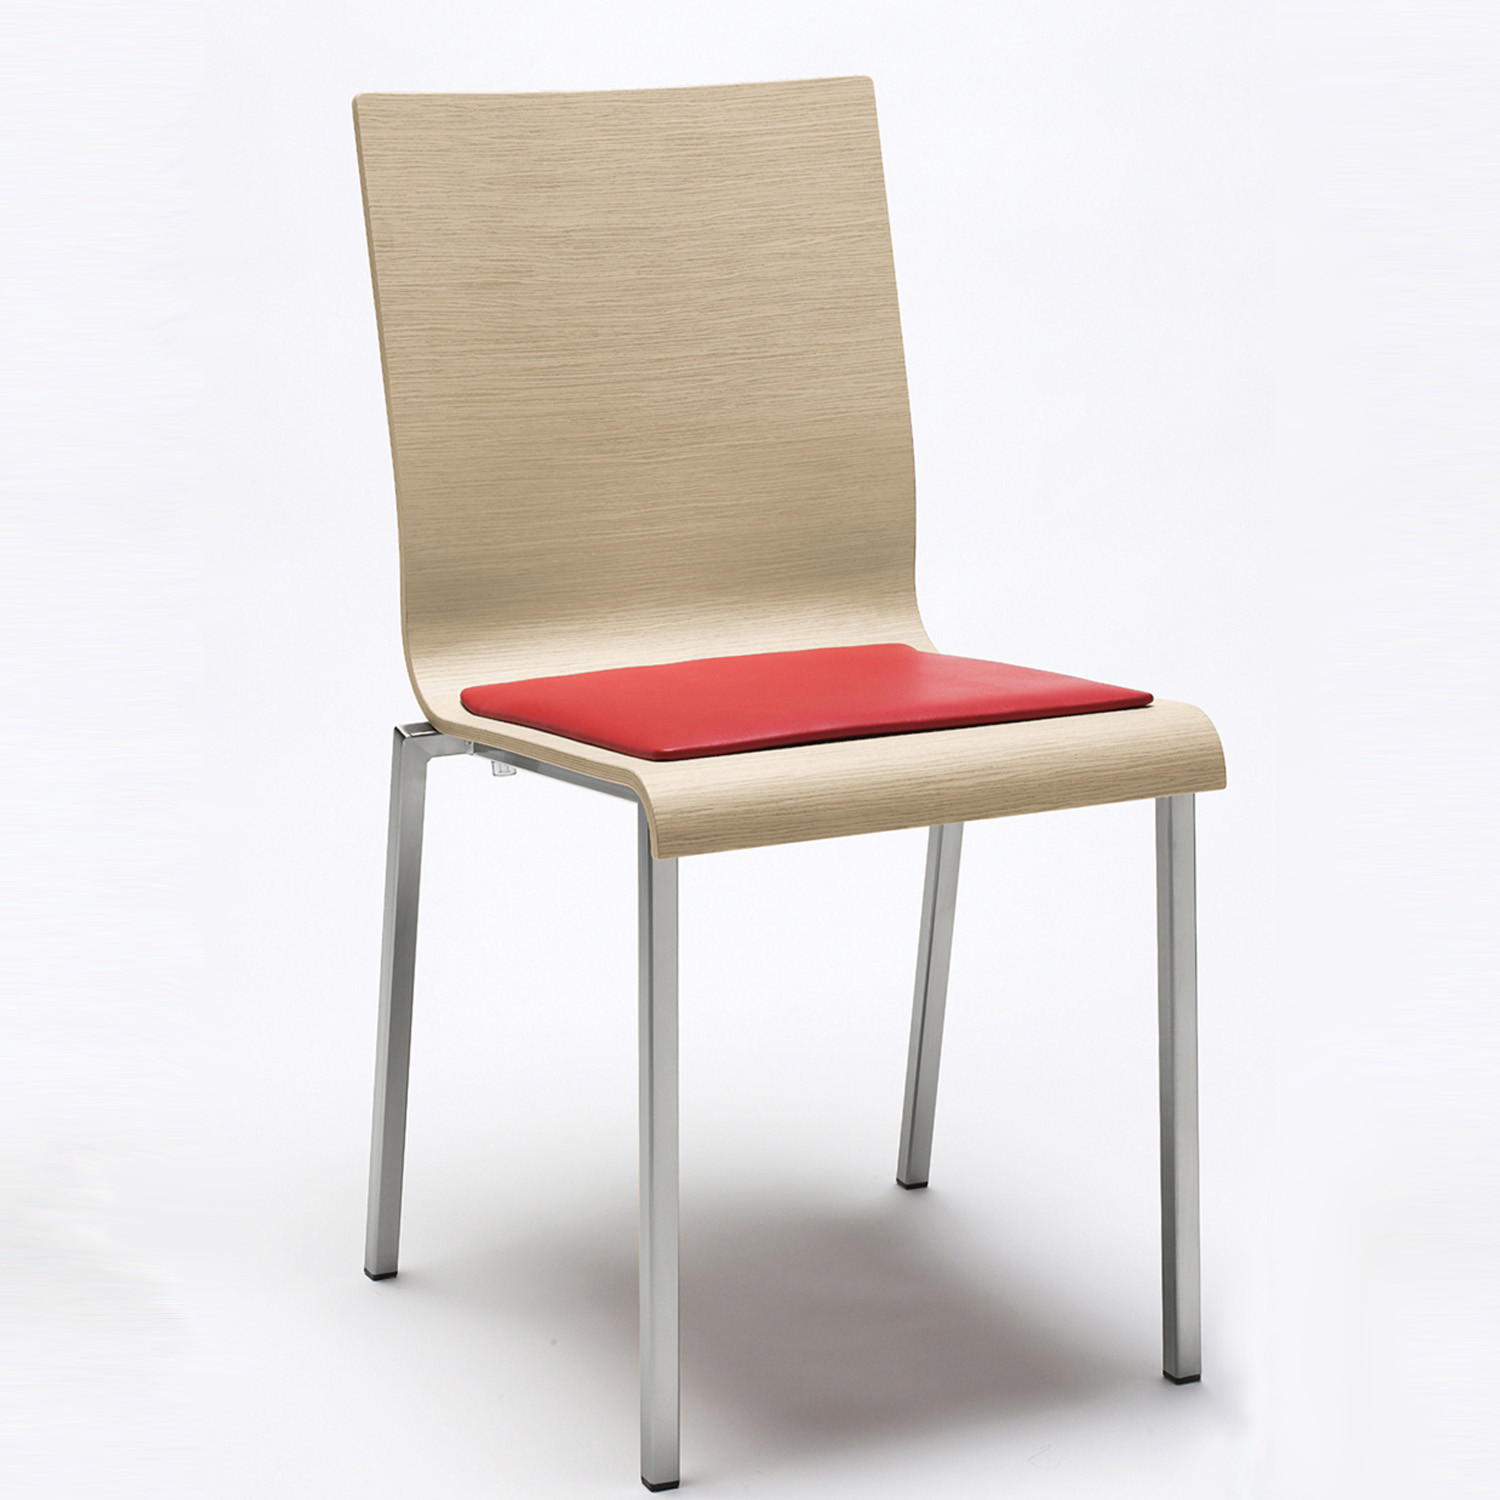 Kuadra Soft Chair